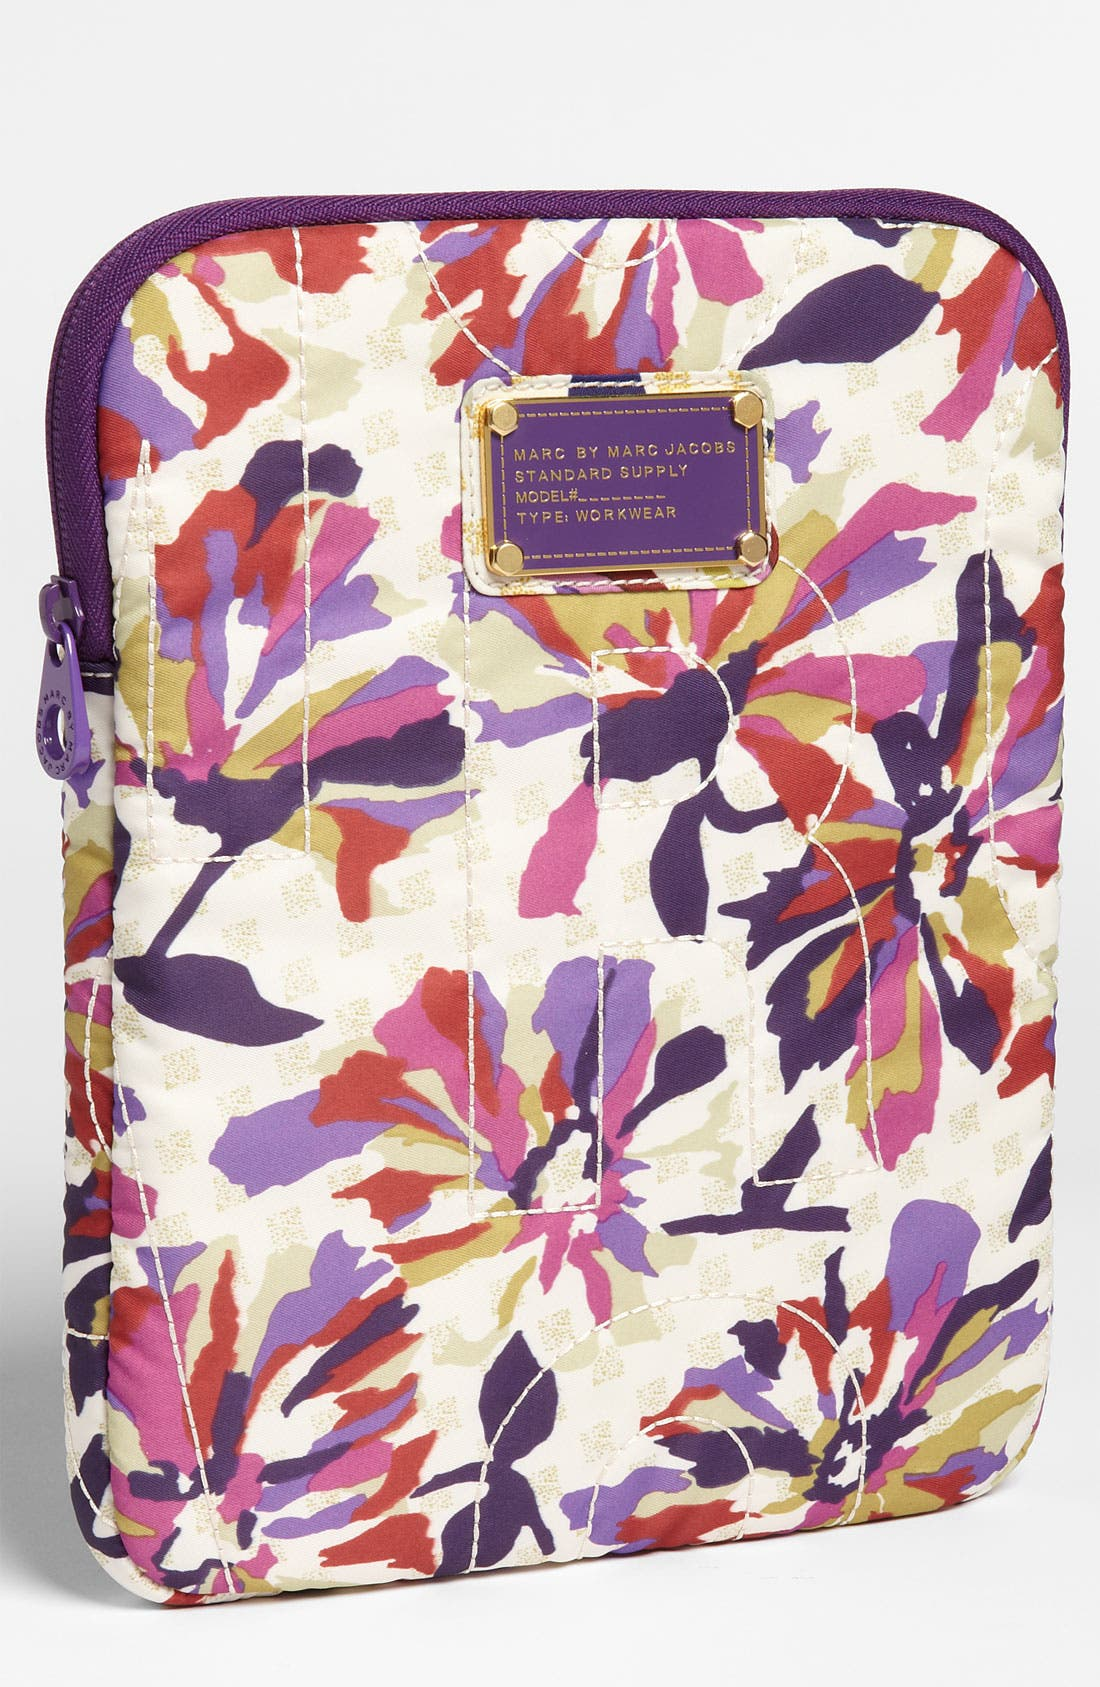 Alternate Image 1 Selected - MARC BY MARC JACOBS 'Pretty Nylon' Tablet Case